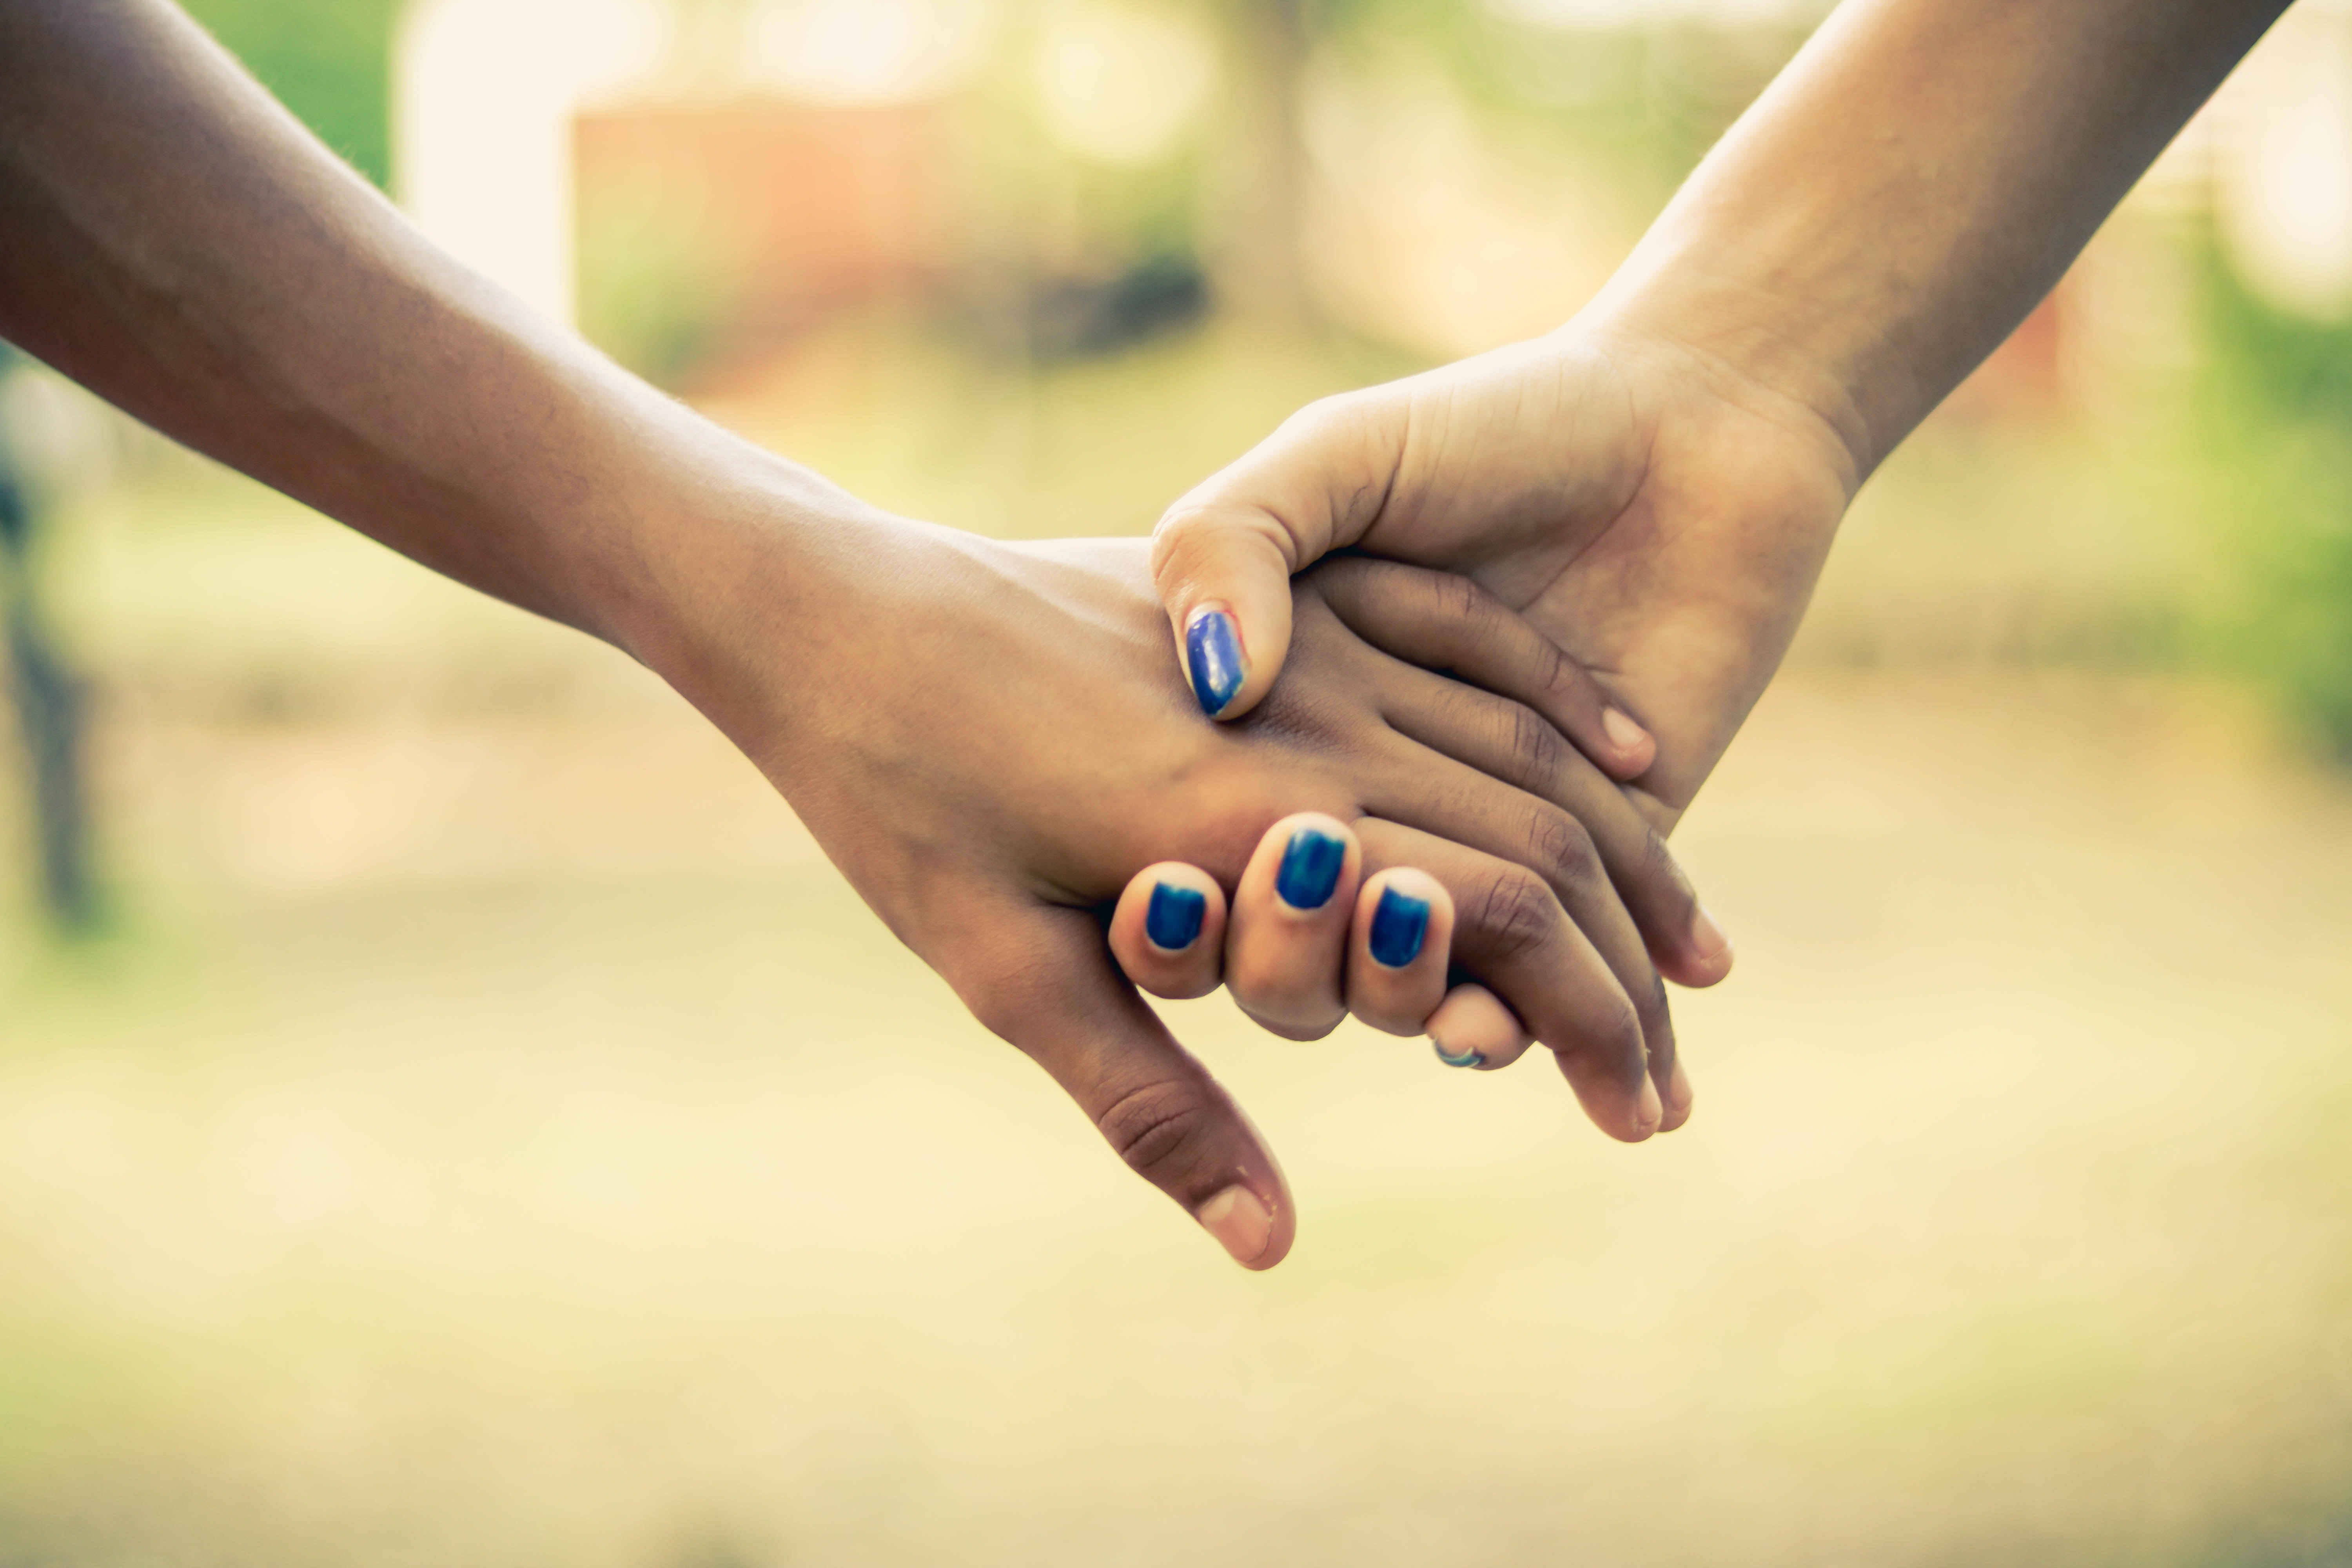 People Confess Their Biggest Fear In Starting A New Relationship